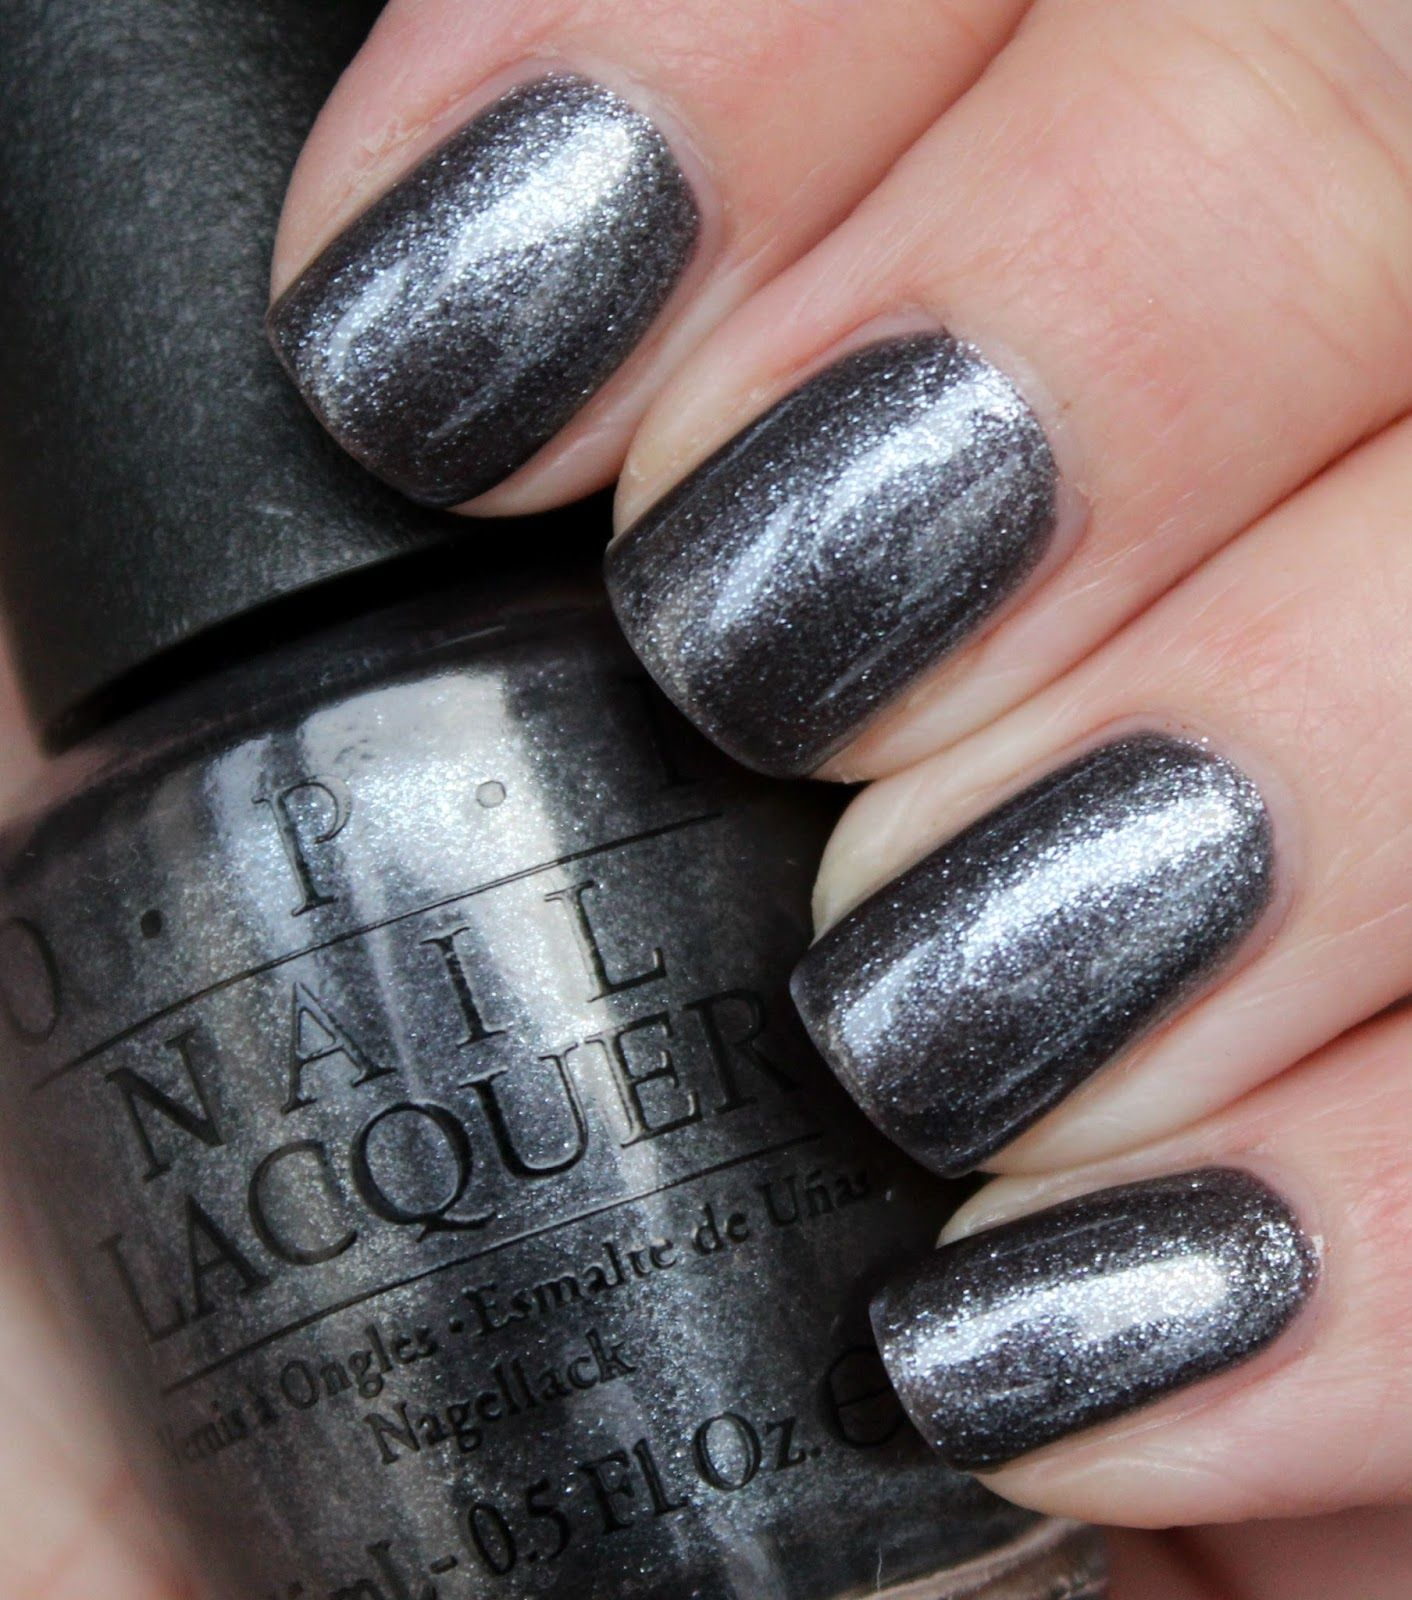 OPI No More Mr Night Sky | NOTD | Pinterest | Night skies, OPI and ...